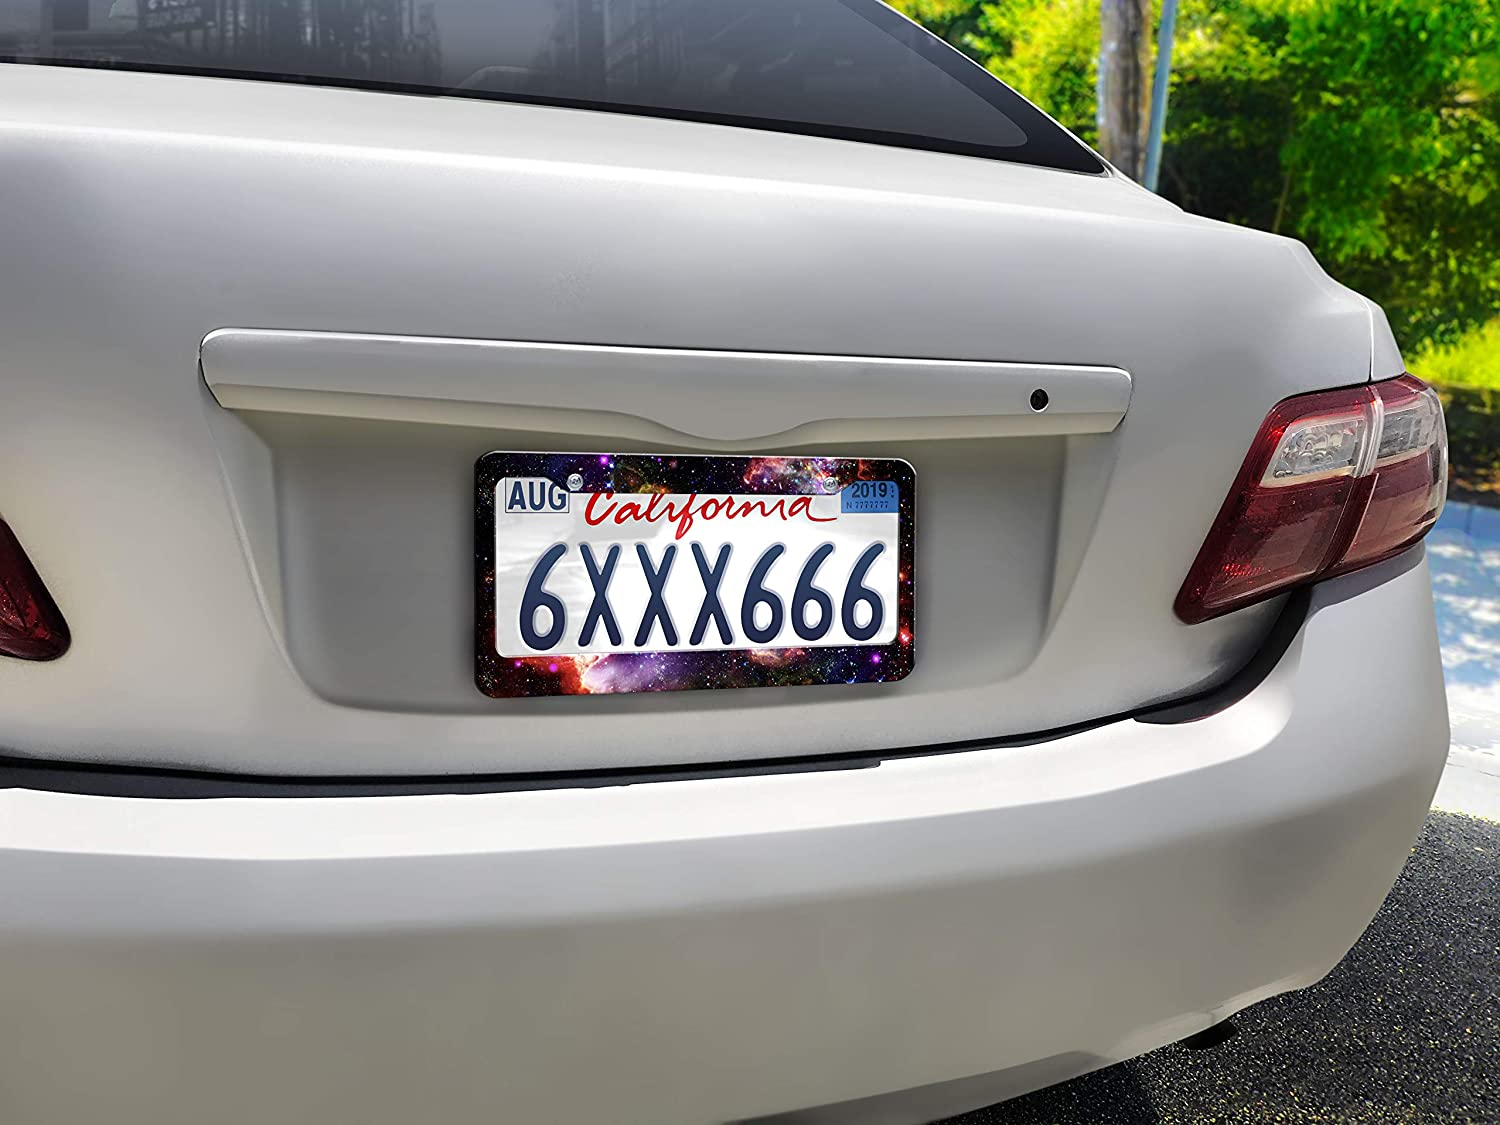 Design Galaxy WIRESTER Printed License Plate Frame Decoration Cover for Car Truck SUV Vehicle